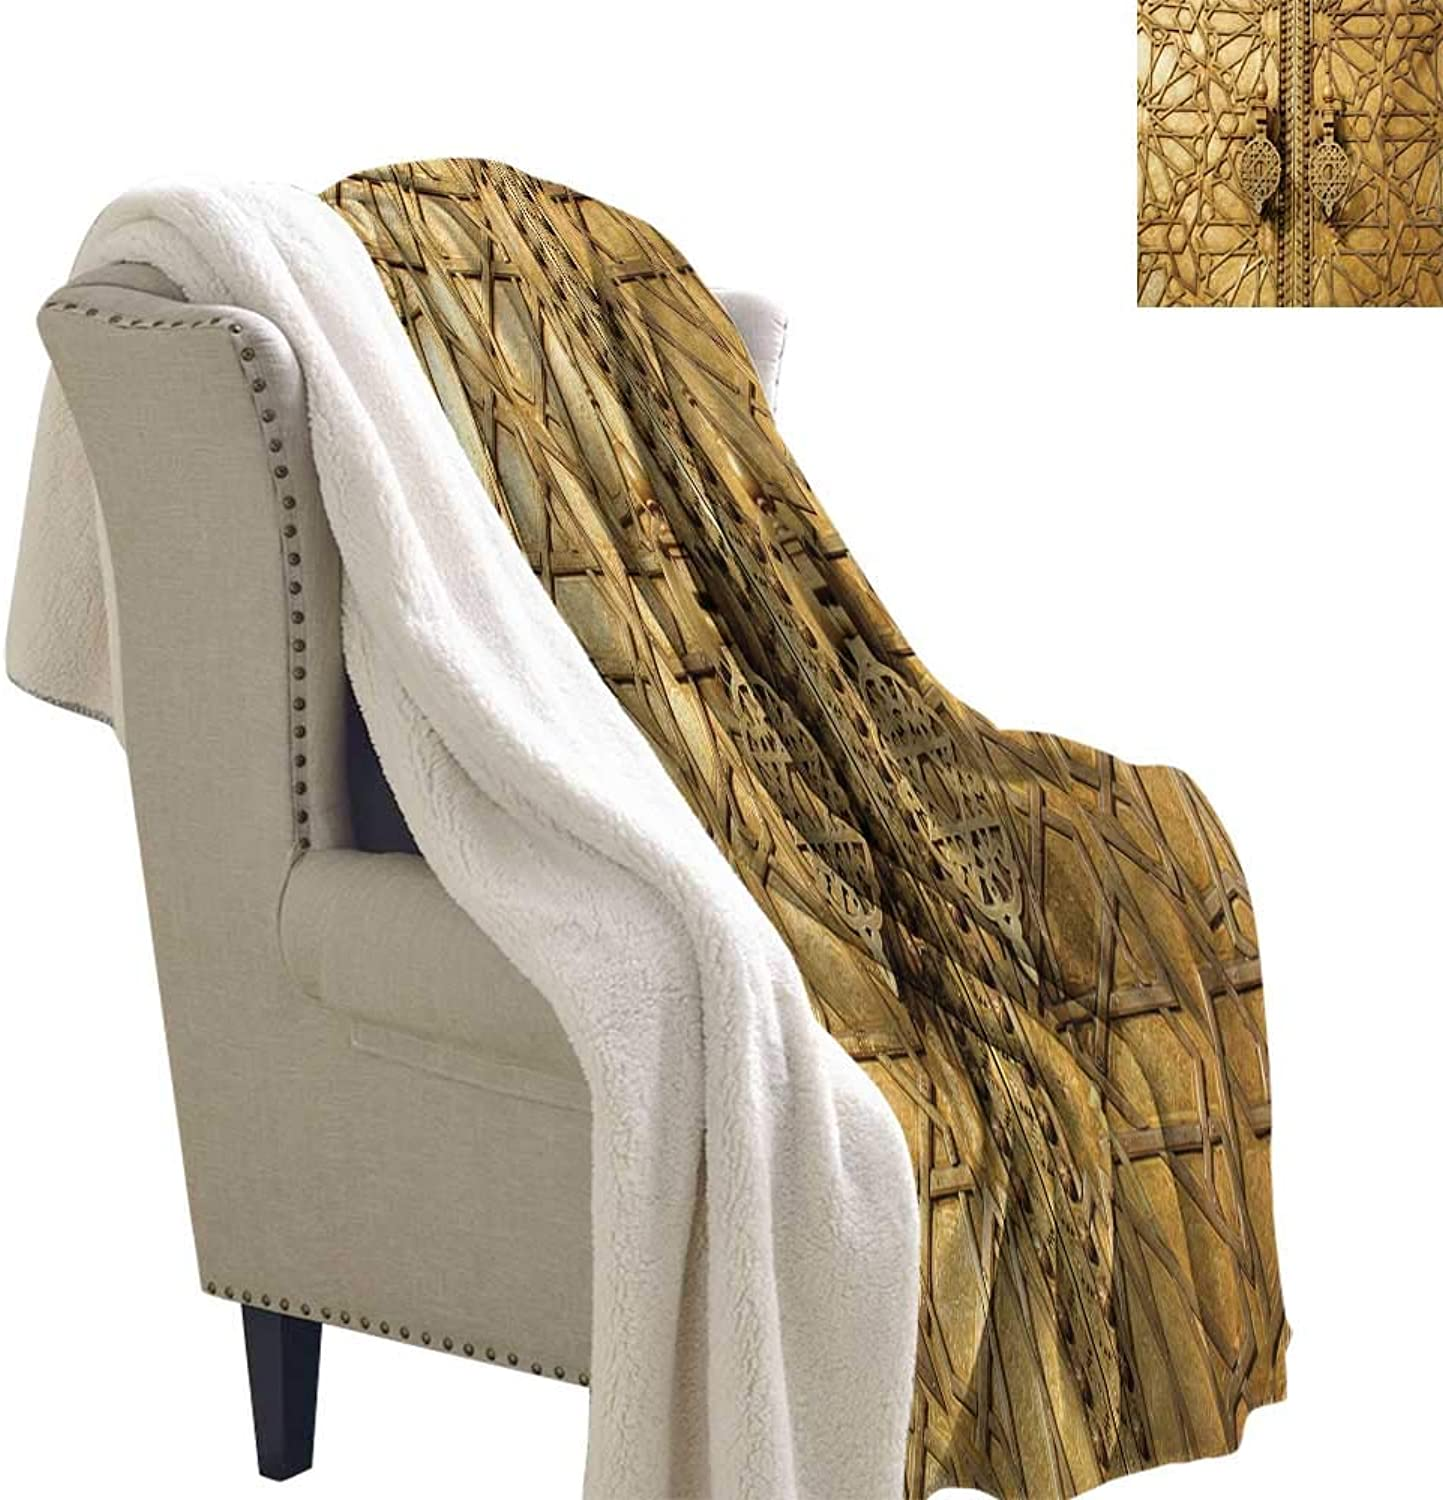 Sunnyhome Mgoldccan Blanket Small Quilt 60x32 Inch Main Gates of Royal Palace in Marrakesh Mgoldcco Travel Tourist Attraction Photo Sherpa Throws Pale Brown